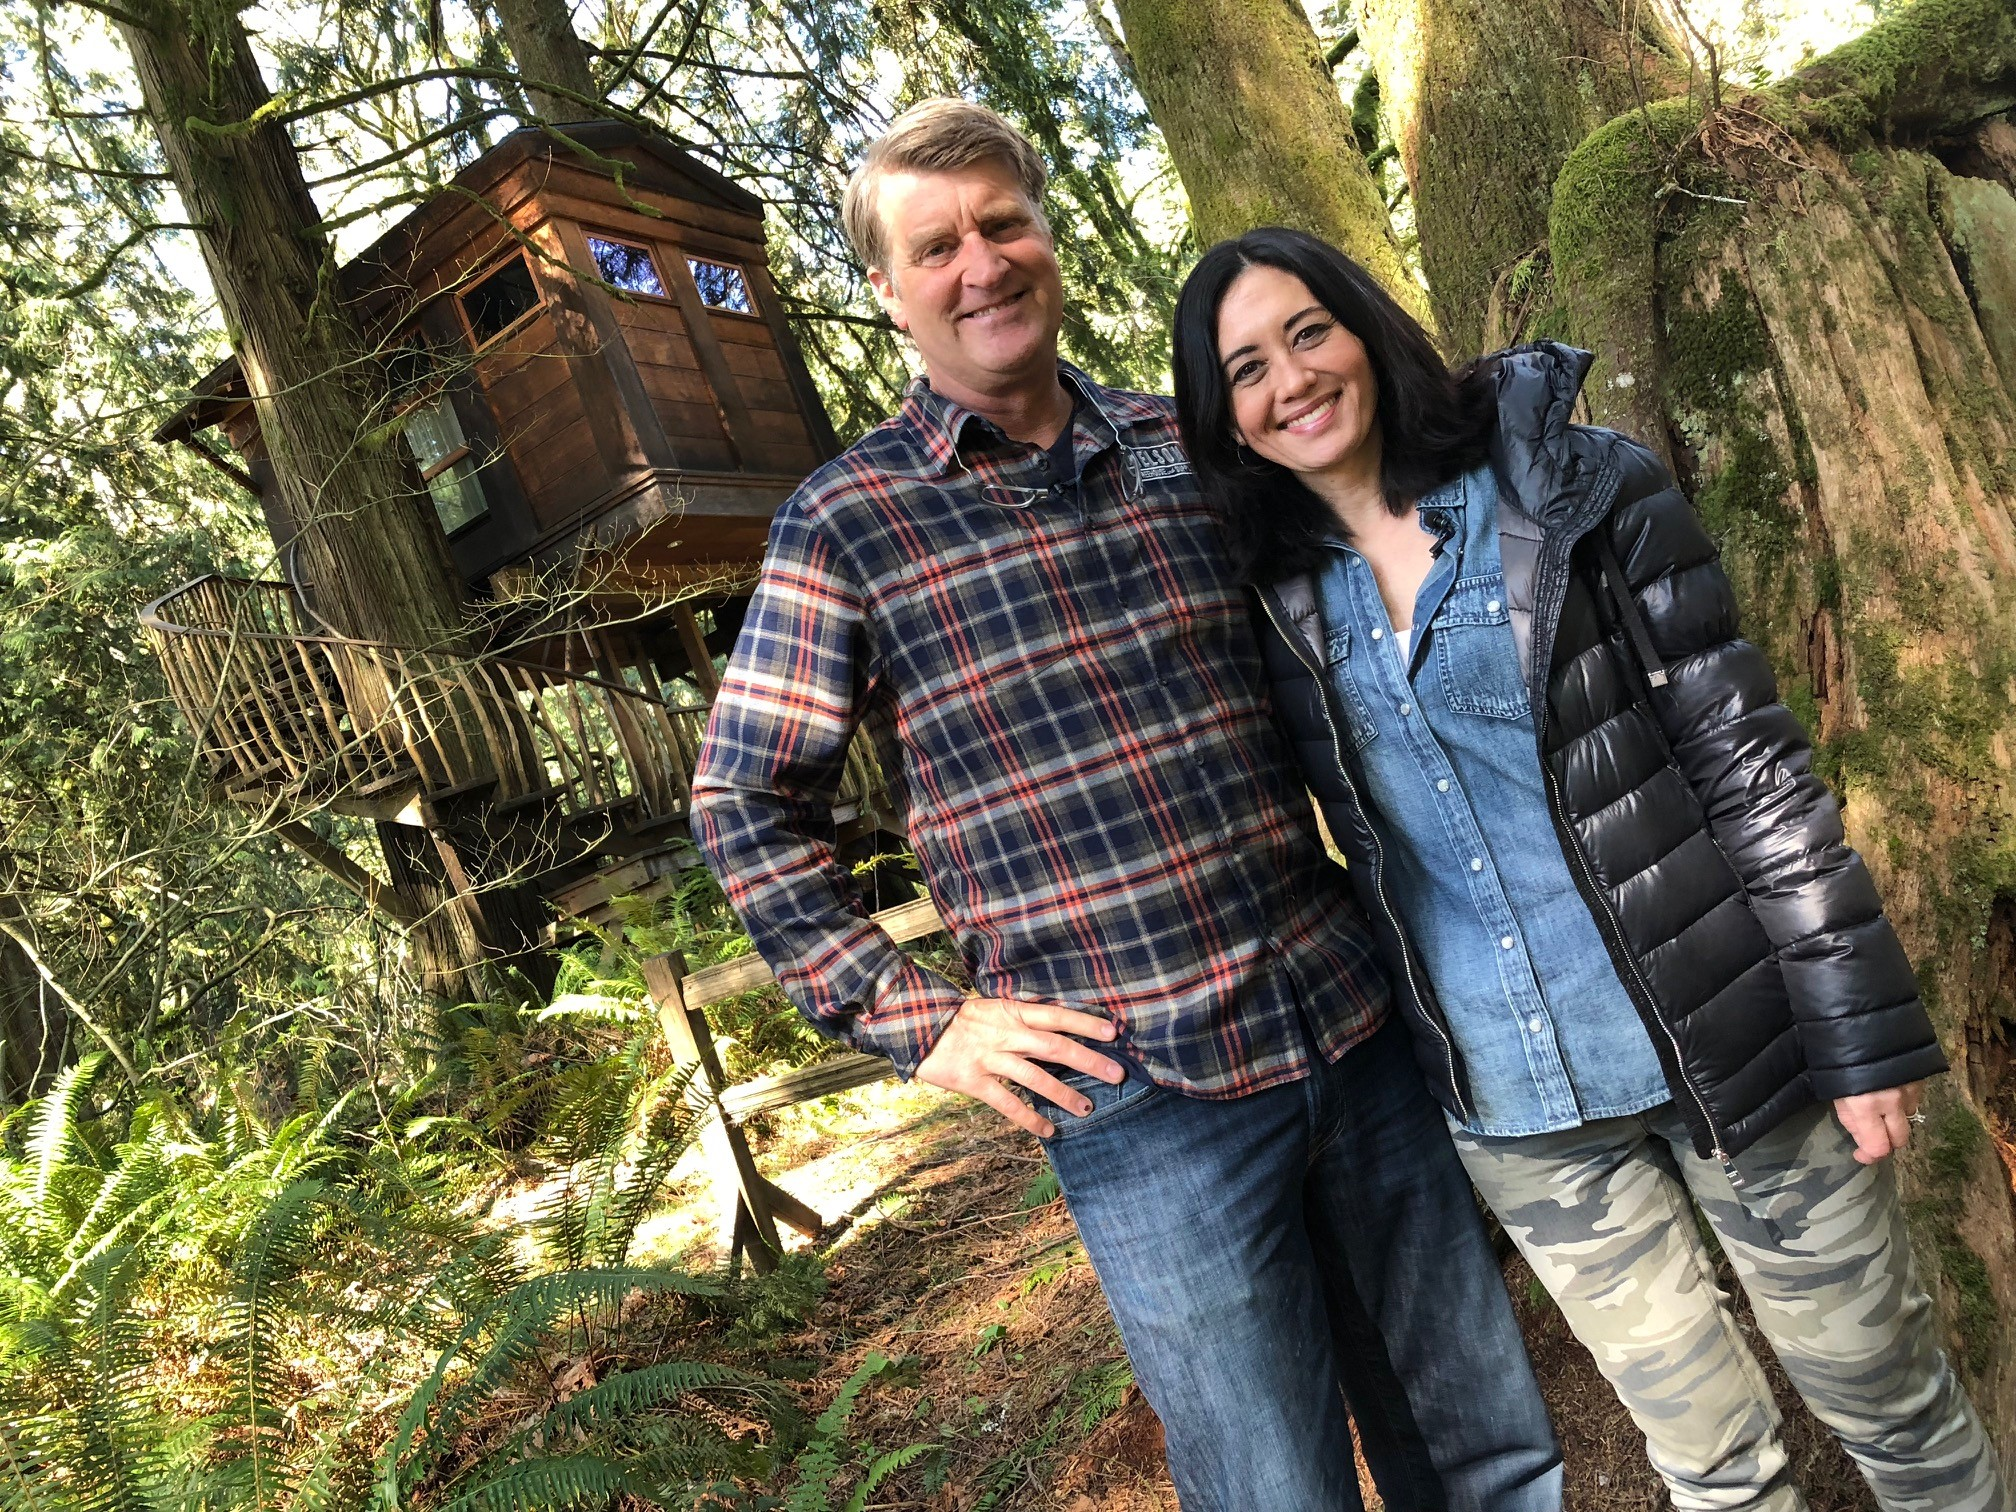 Pete Nelson and Malia Karlinsky. Nelson is a Master Treehouse Builder and star of the TV show Treehouse Masters. He has created special spots for people among the trees at Treehouse Point, 25 miles east of Seattle. (Photo Credit Seattle Refined)